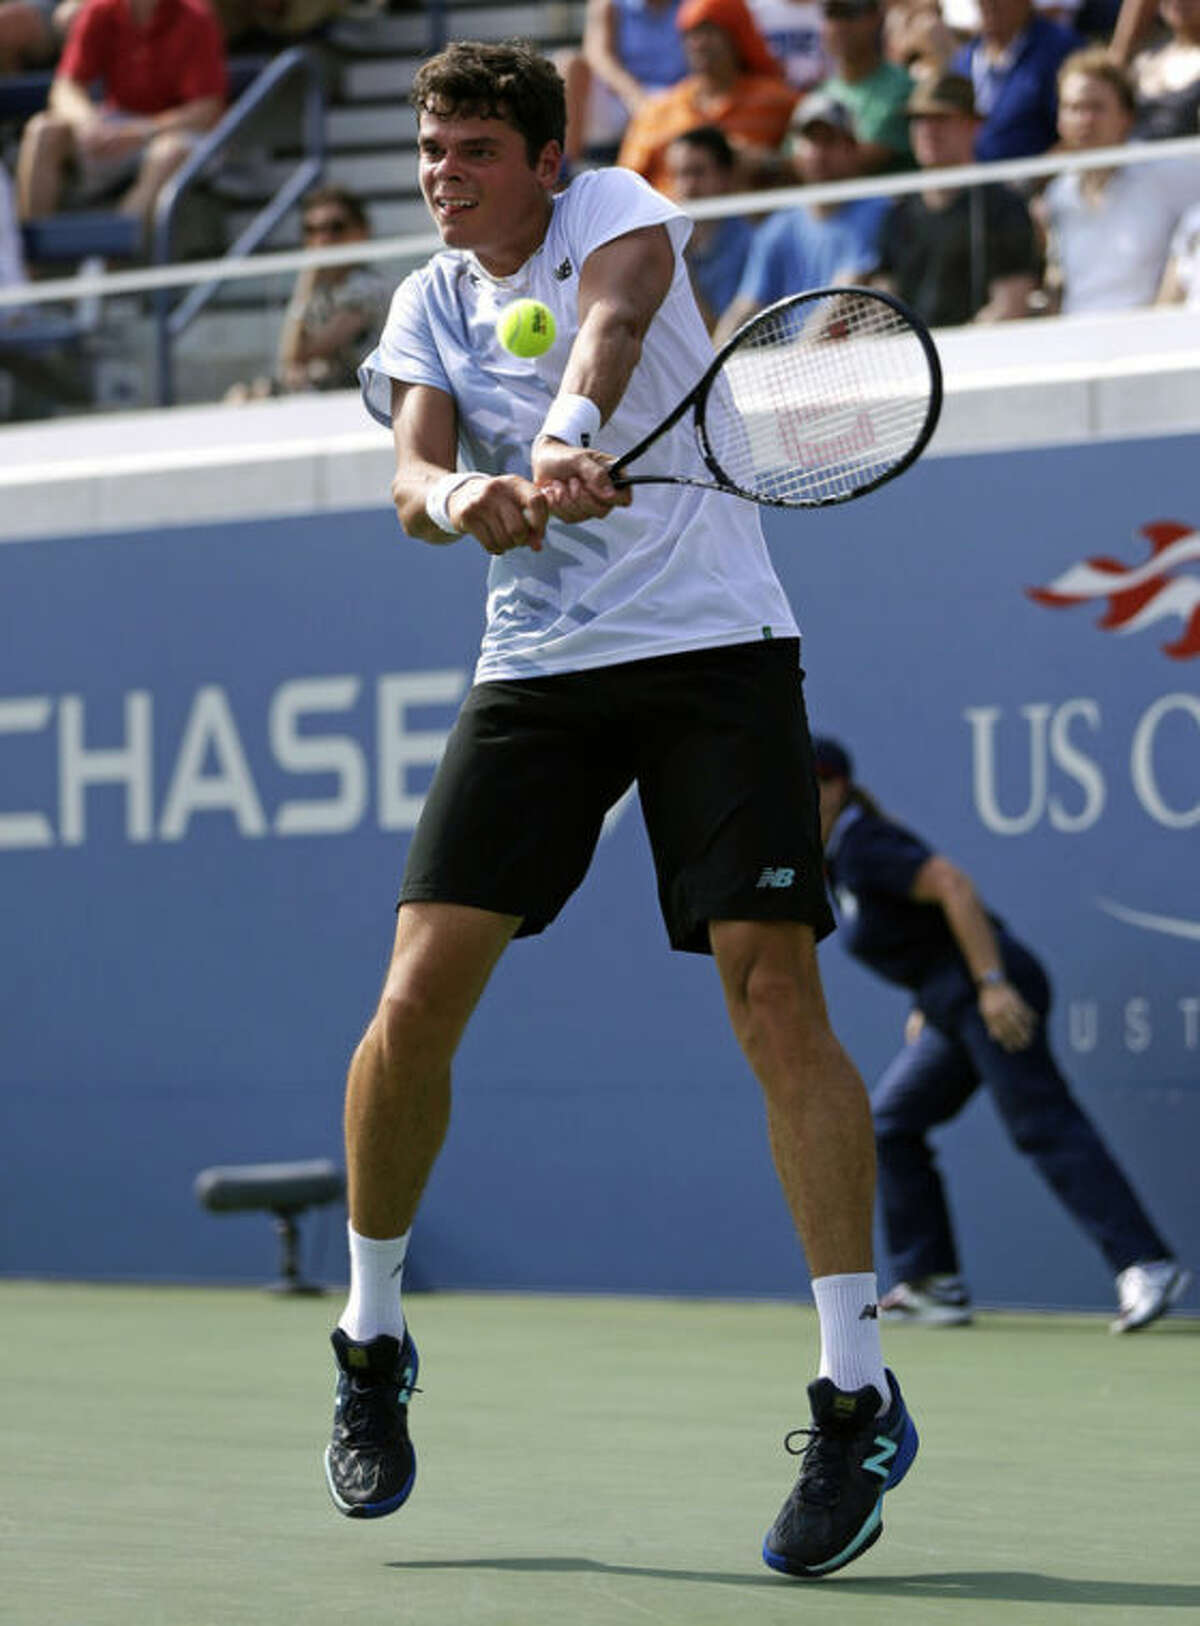 Milos Raonic, of Canada, returns a shot to Feliciano Lopez, of Spain, during the third round of the 2013 U.S. Open tennis tournament, Saturday, Aug. 31, 2013, in New York. (AP Photo/Julio Cortez)